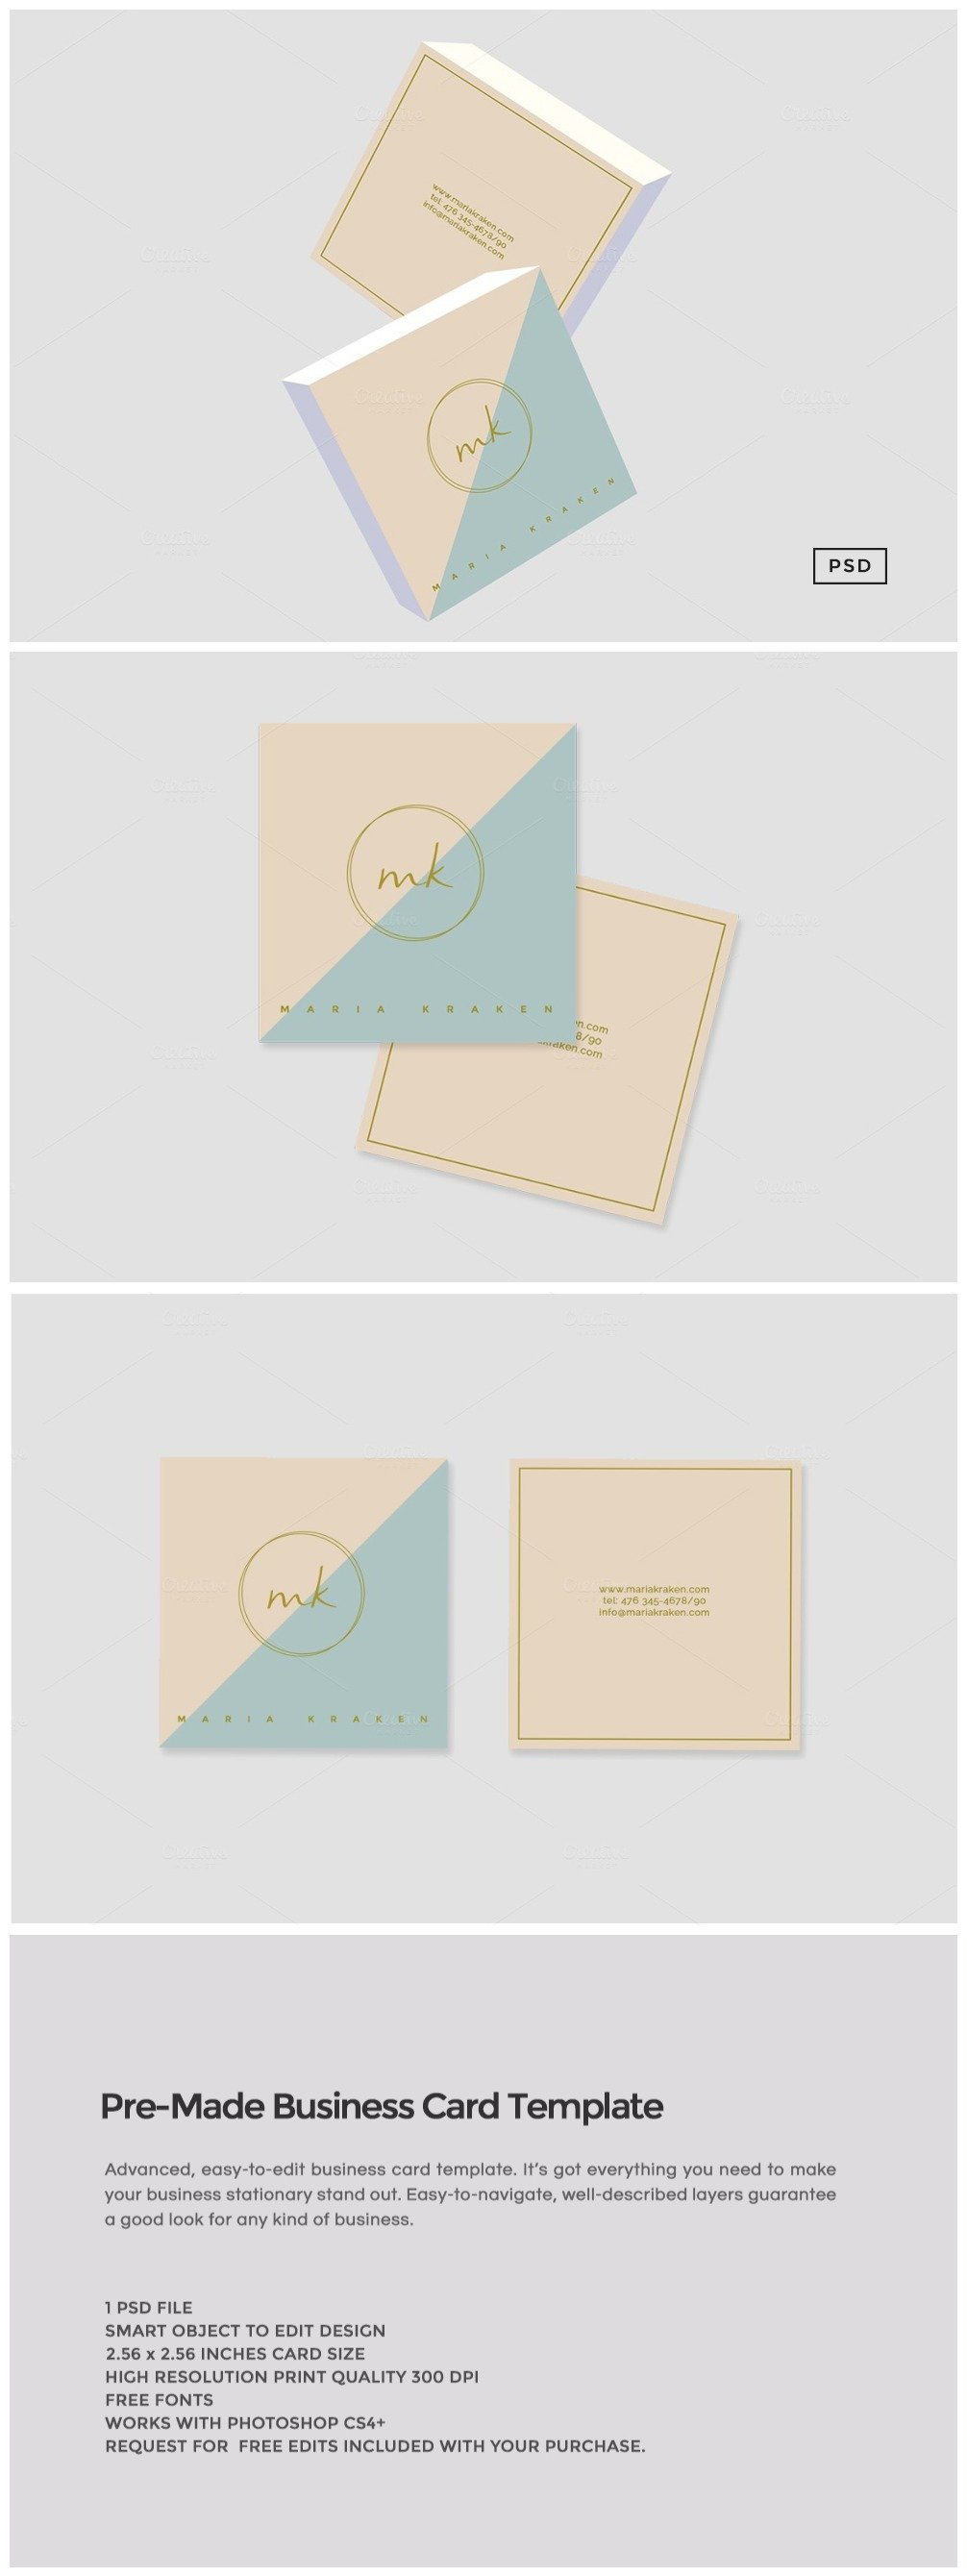 Free Printable Business Cards Free Business Cards - oukas.info